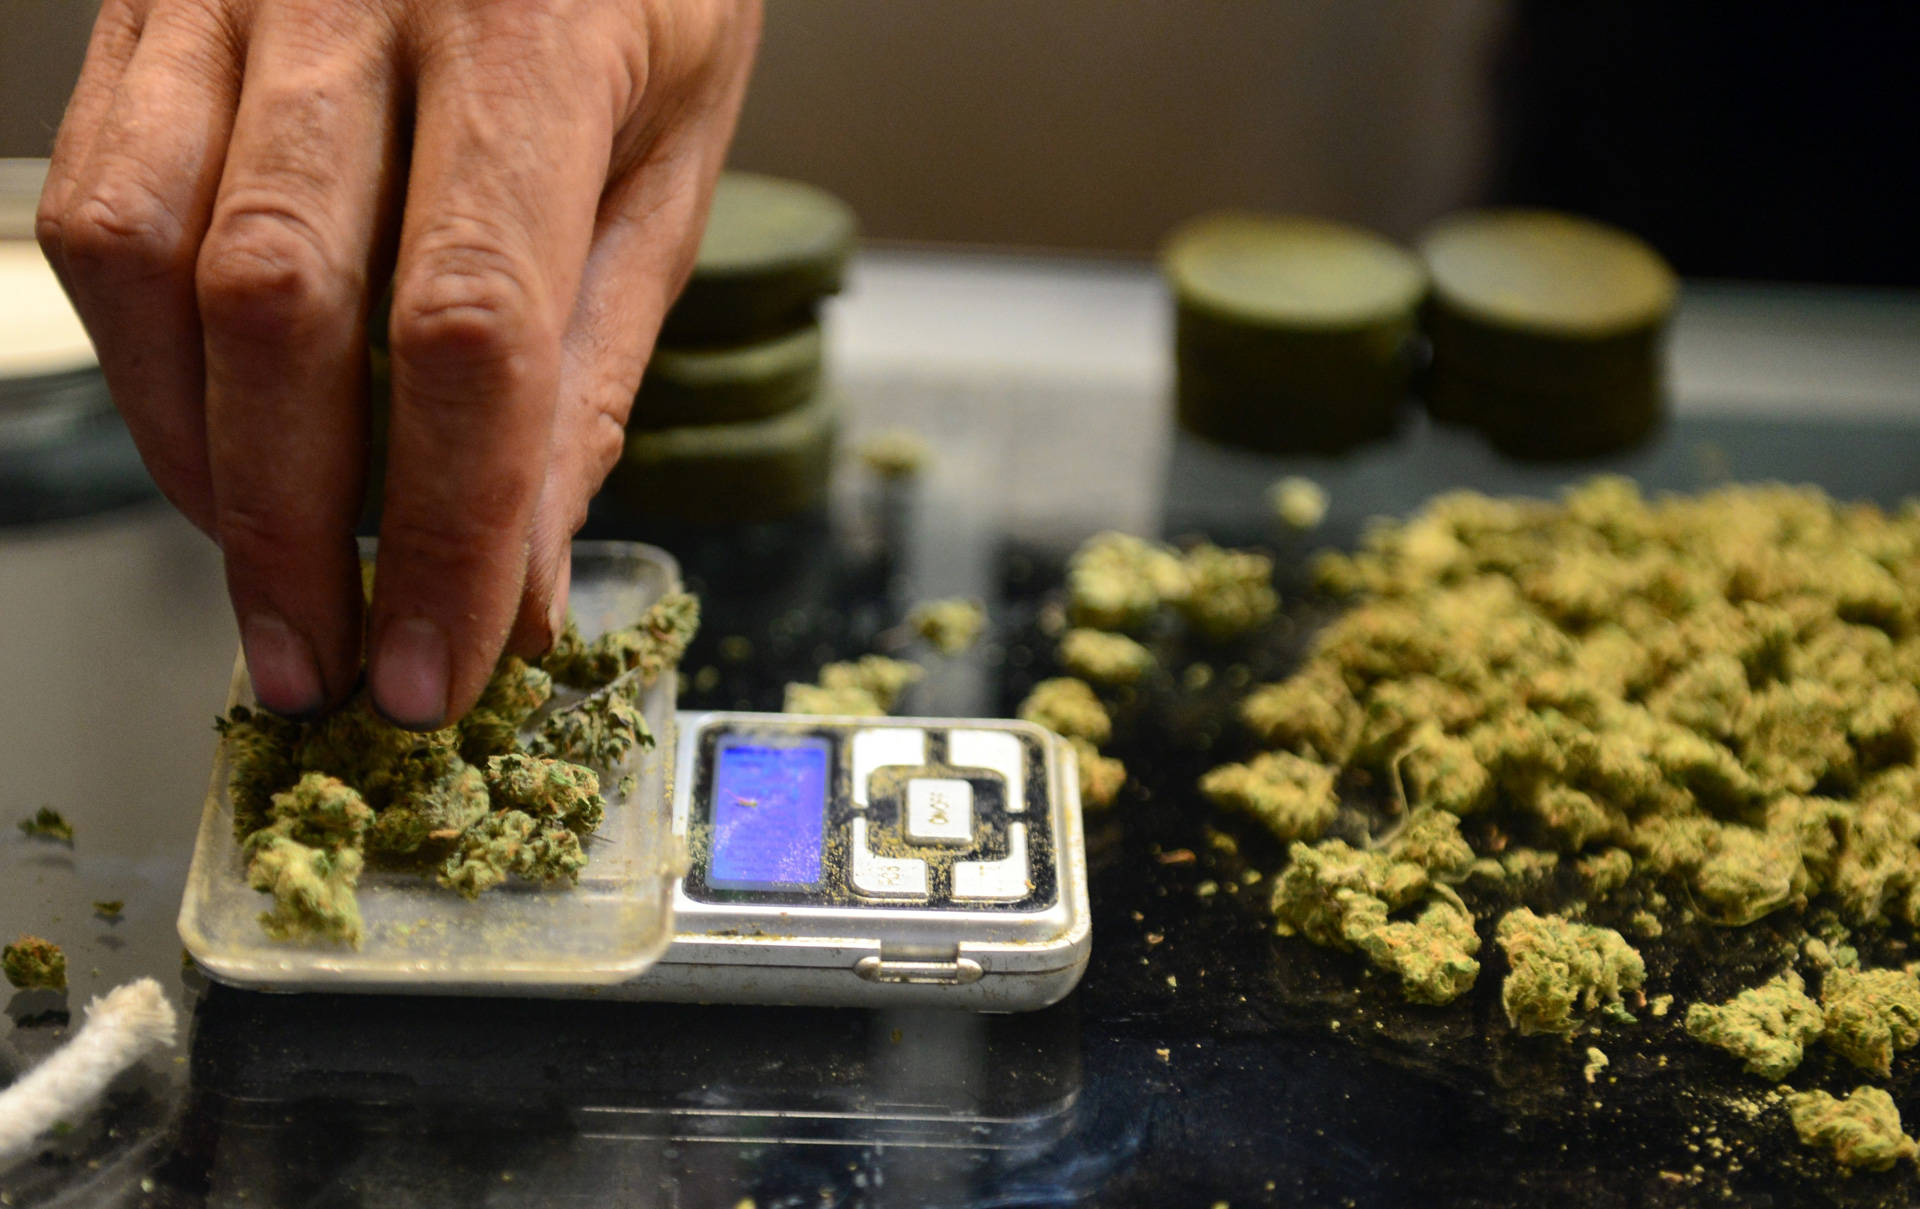 A vendor weighs marijuana buds in Los Angeles. The White House press secretary called recreational marijuana a 'very, very different subject' from medical marijuana. Frederic J. Brown/AFP/Getty Images